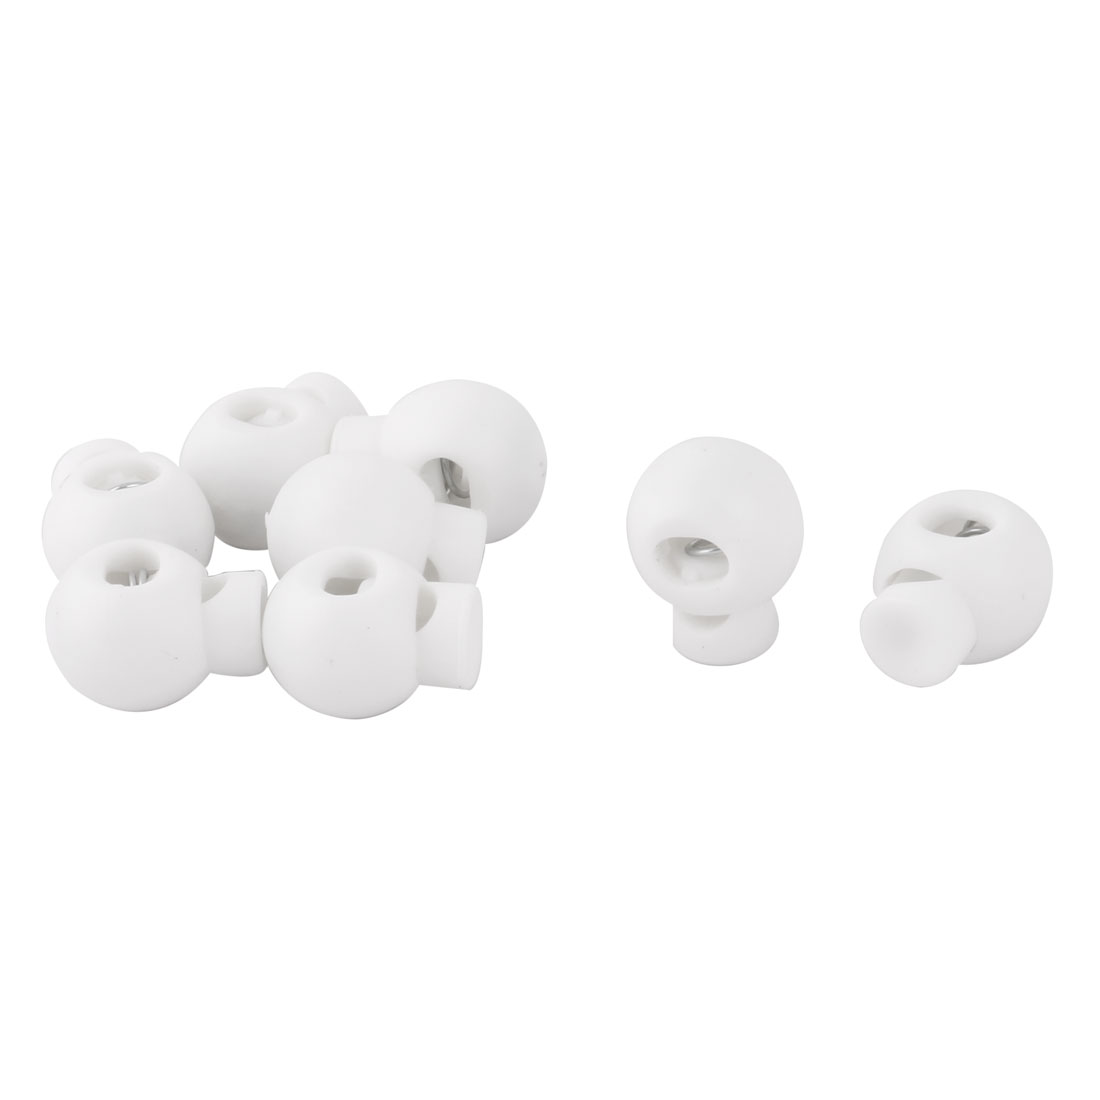 Plastic Spring Loaded Coat Clothes Sliding Cord Lock Stopper Fastener White 8pcs